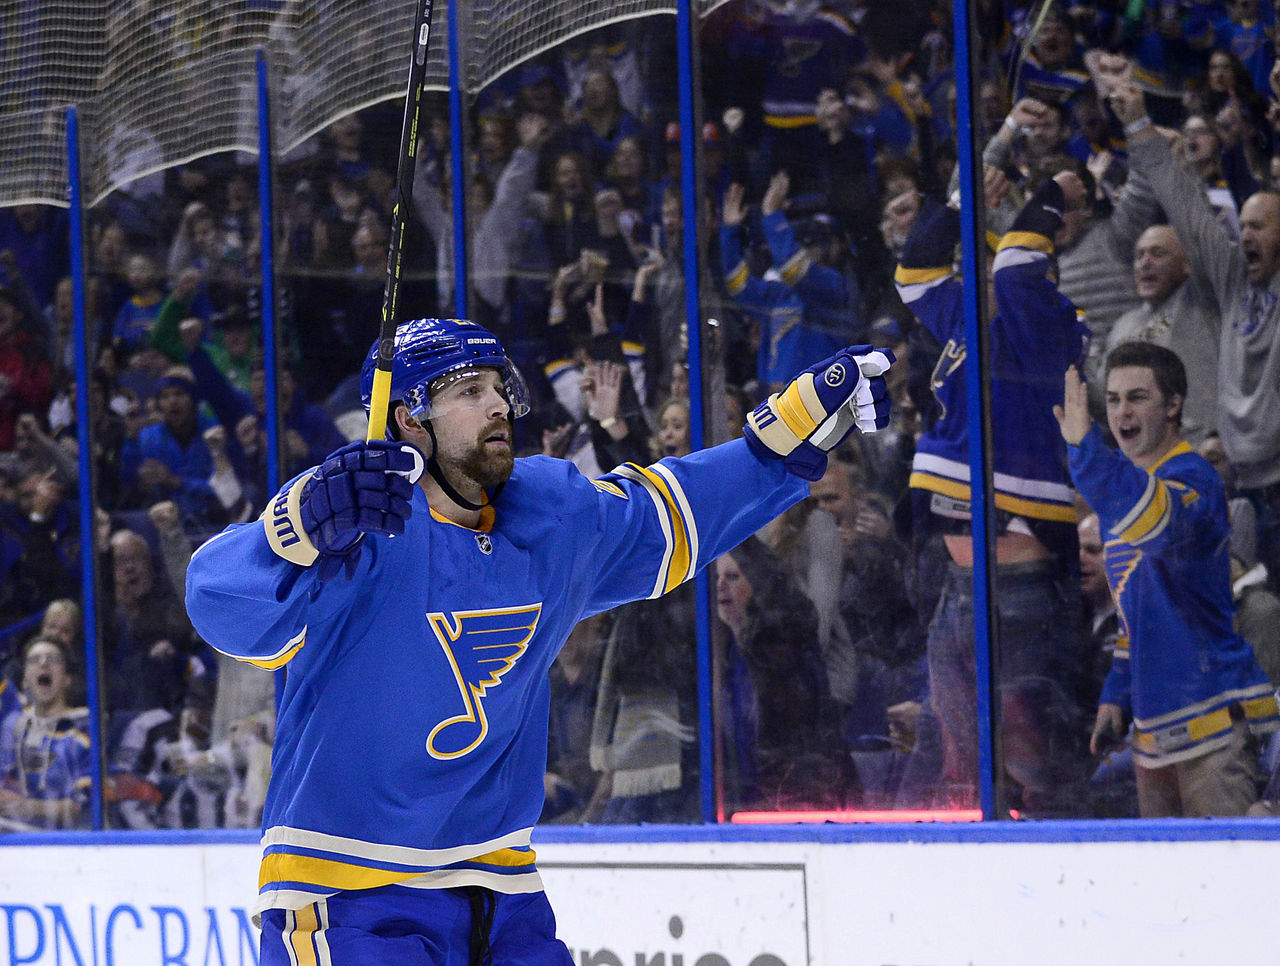 Cropped 2017 03 12t025849z 1402859771 nocid rtrmadp 3 nhl new york islanders at st louis blues